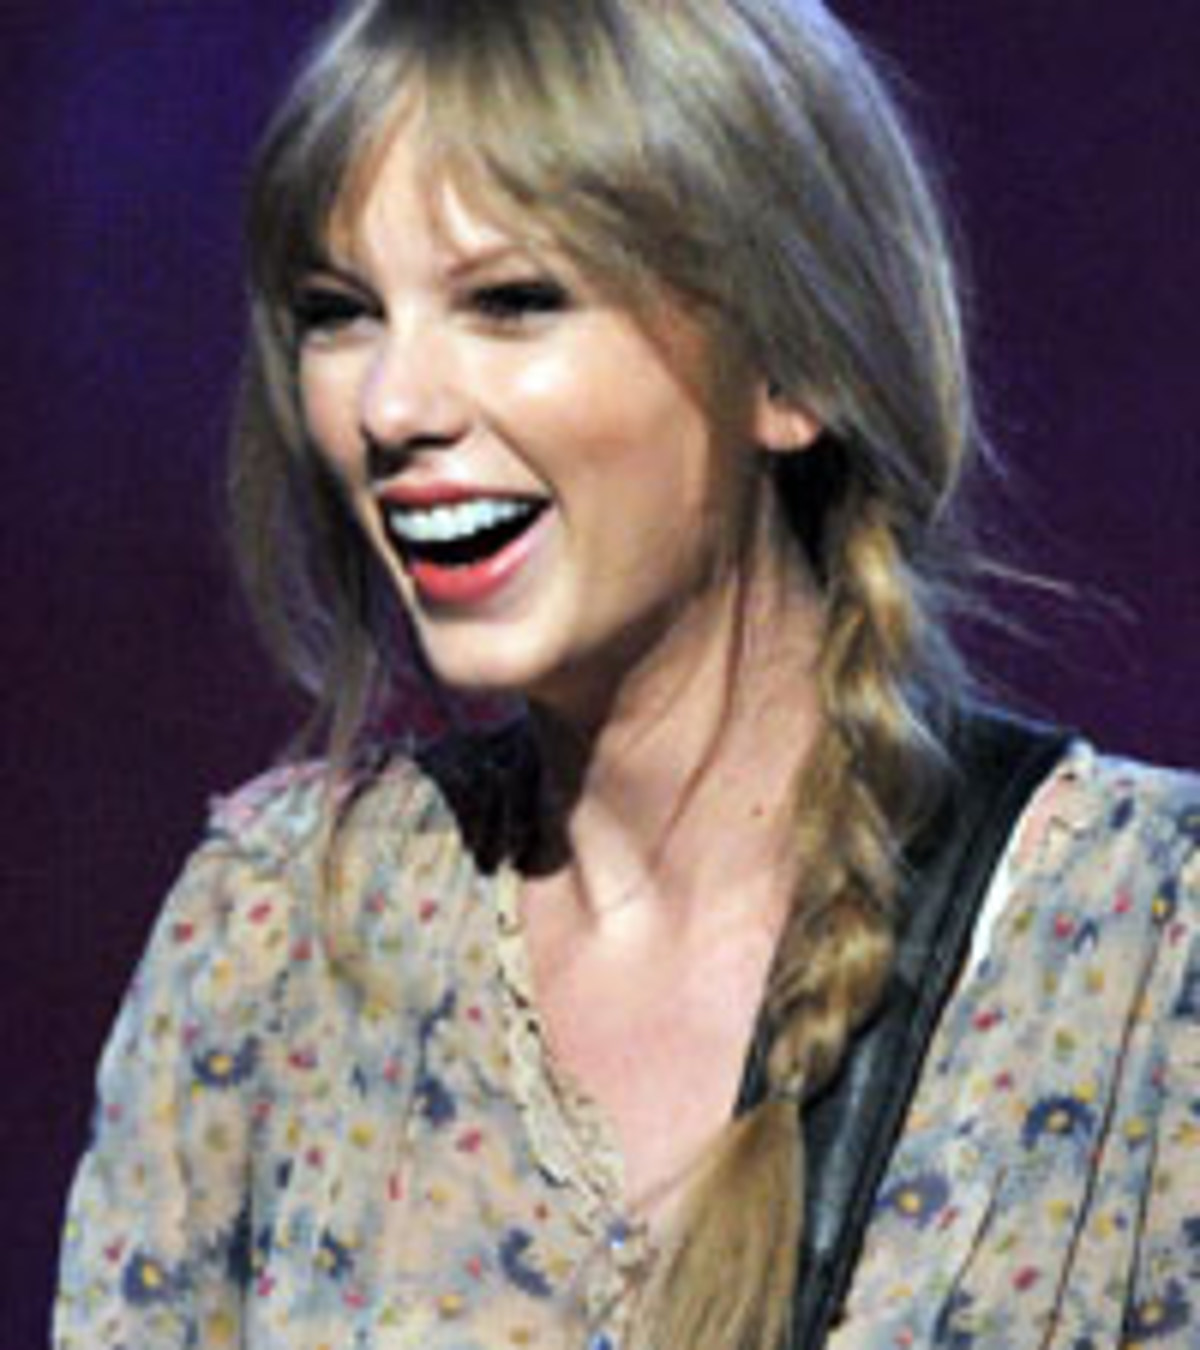 Glee Gets Mean Taylor Swift Song To Be Featured On Hit Show